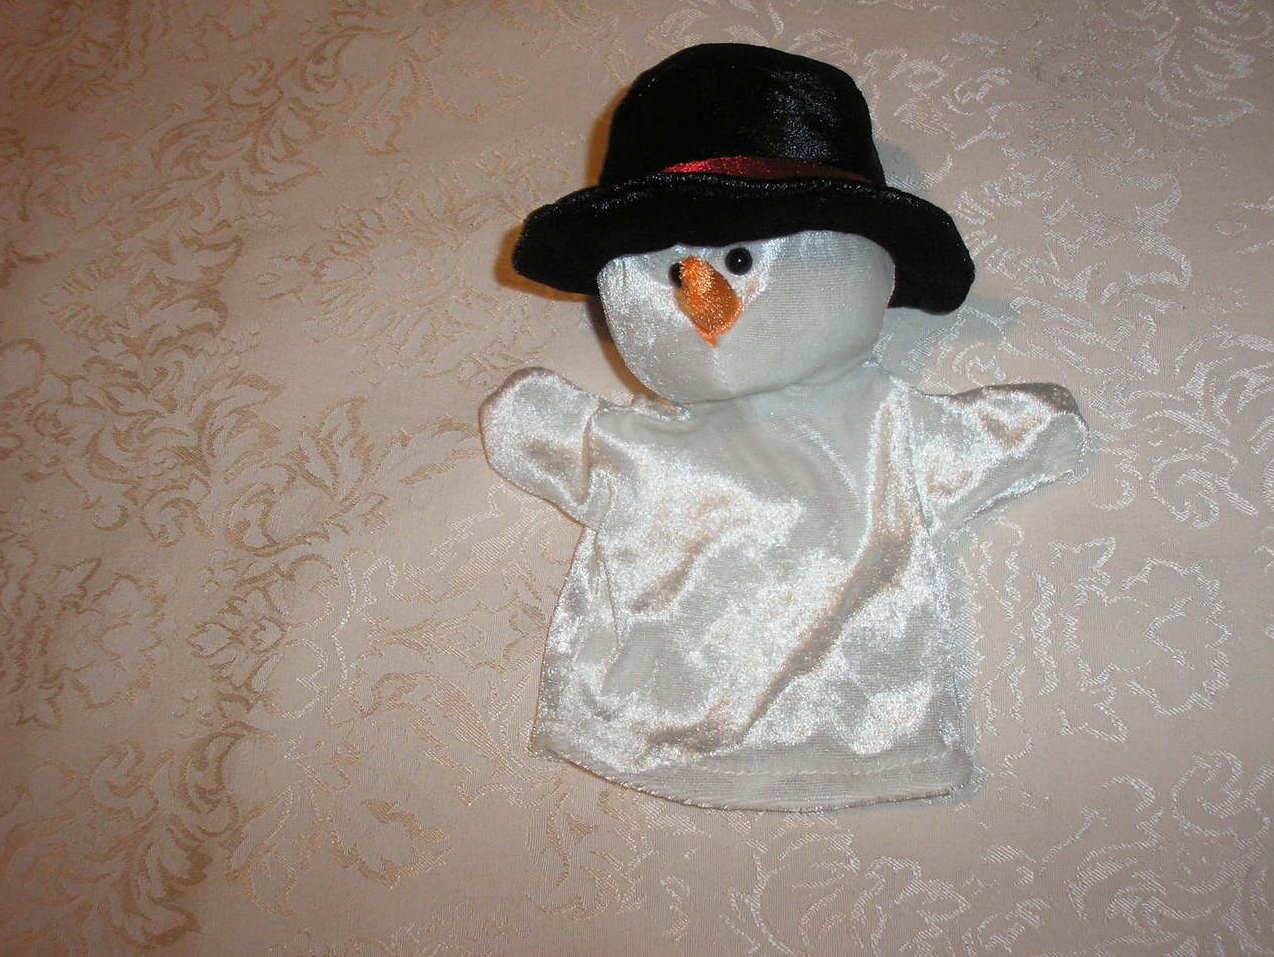 Frosty Snowman Hand Puppet 9 inches like new condition